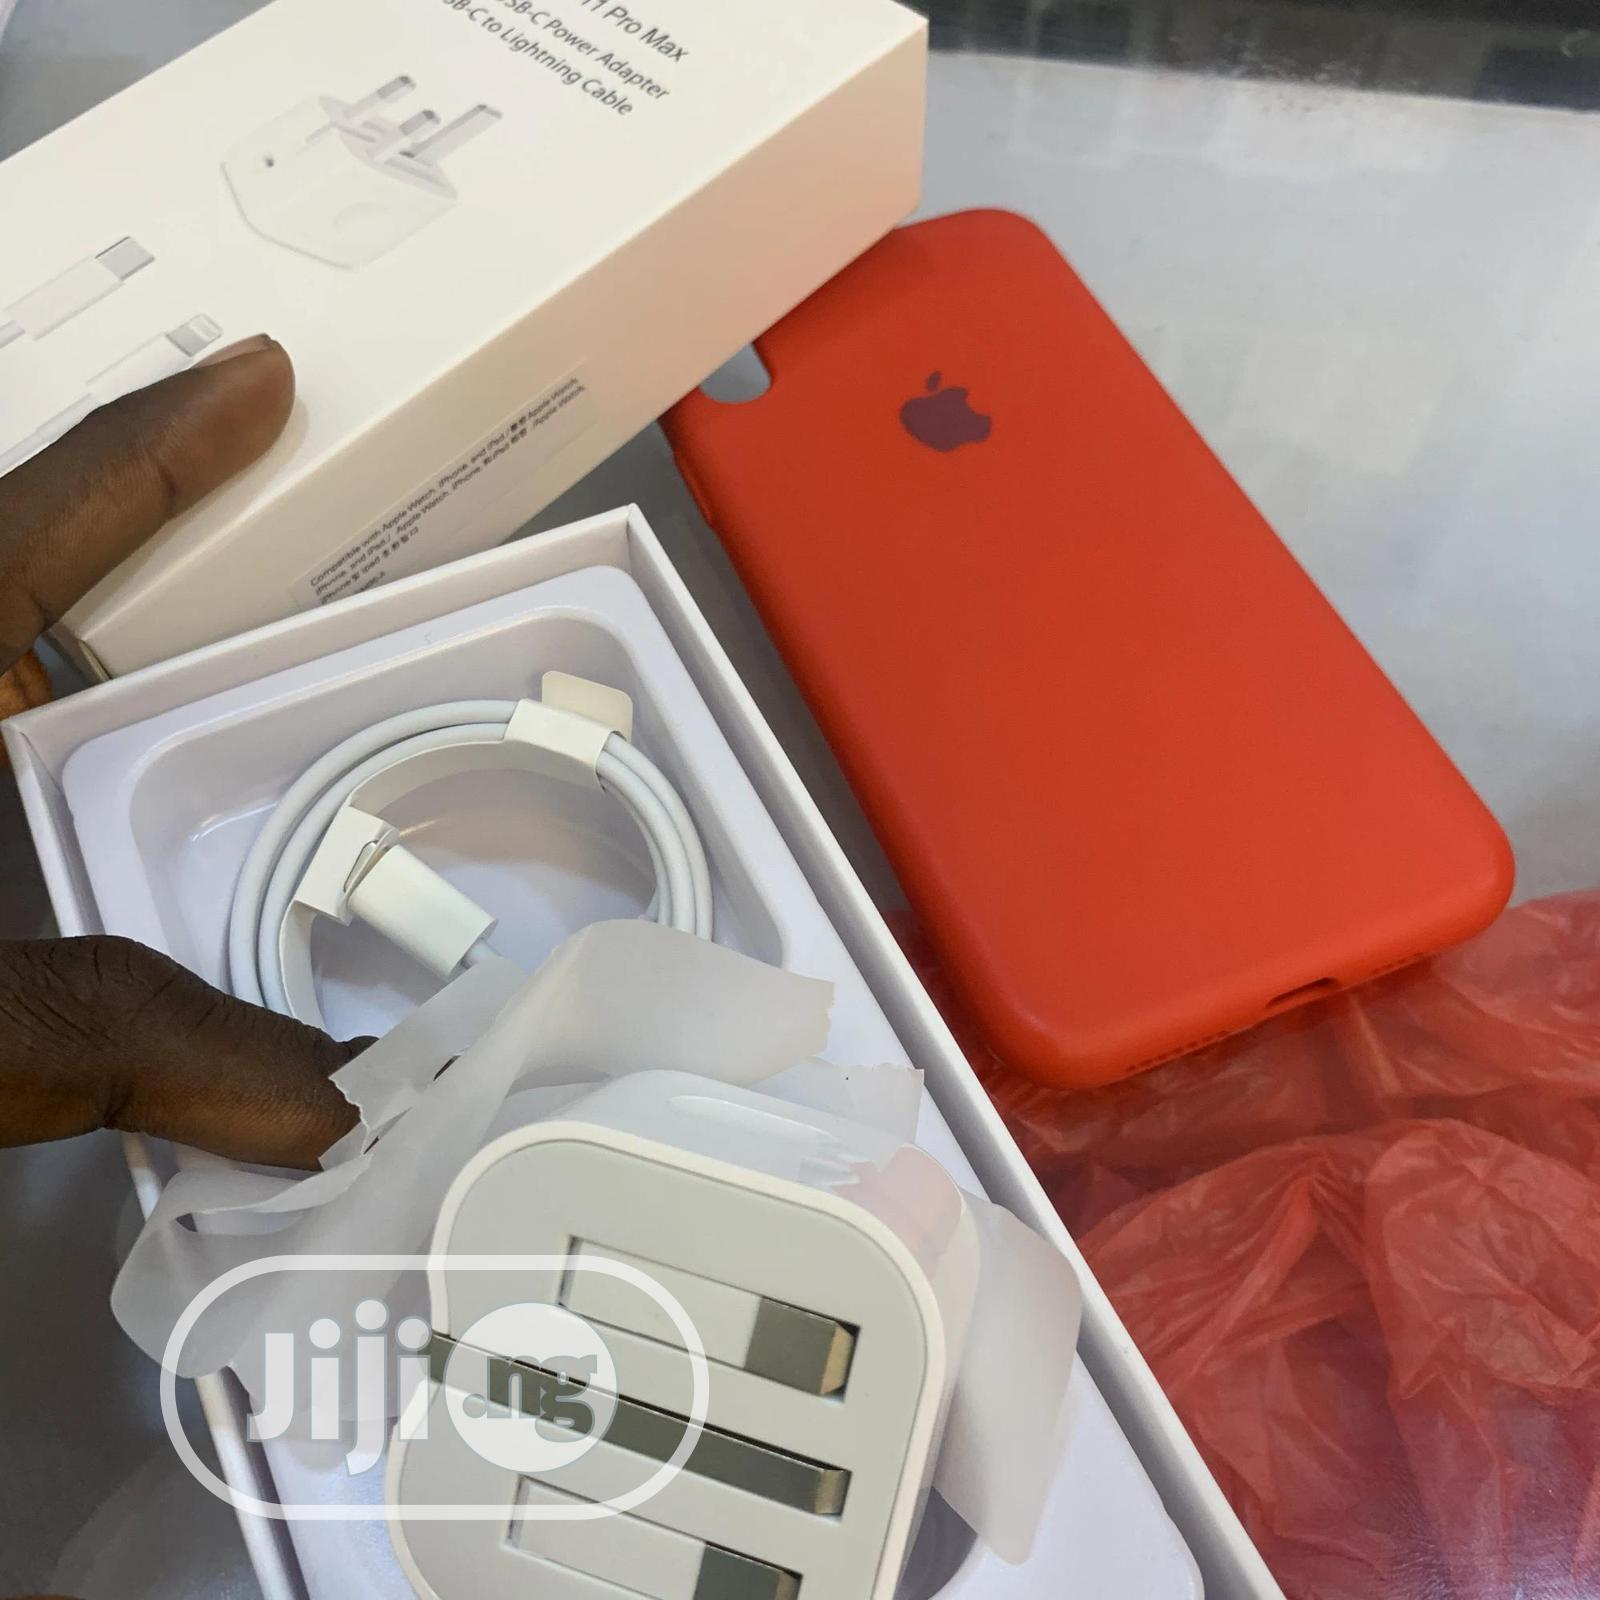 Original Follow Come iPhone 11pro Max Charger | Accessories for Mobile Phones & Tablets for sale in Wuse 2, Abuja (FCT) State, Nigeria